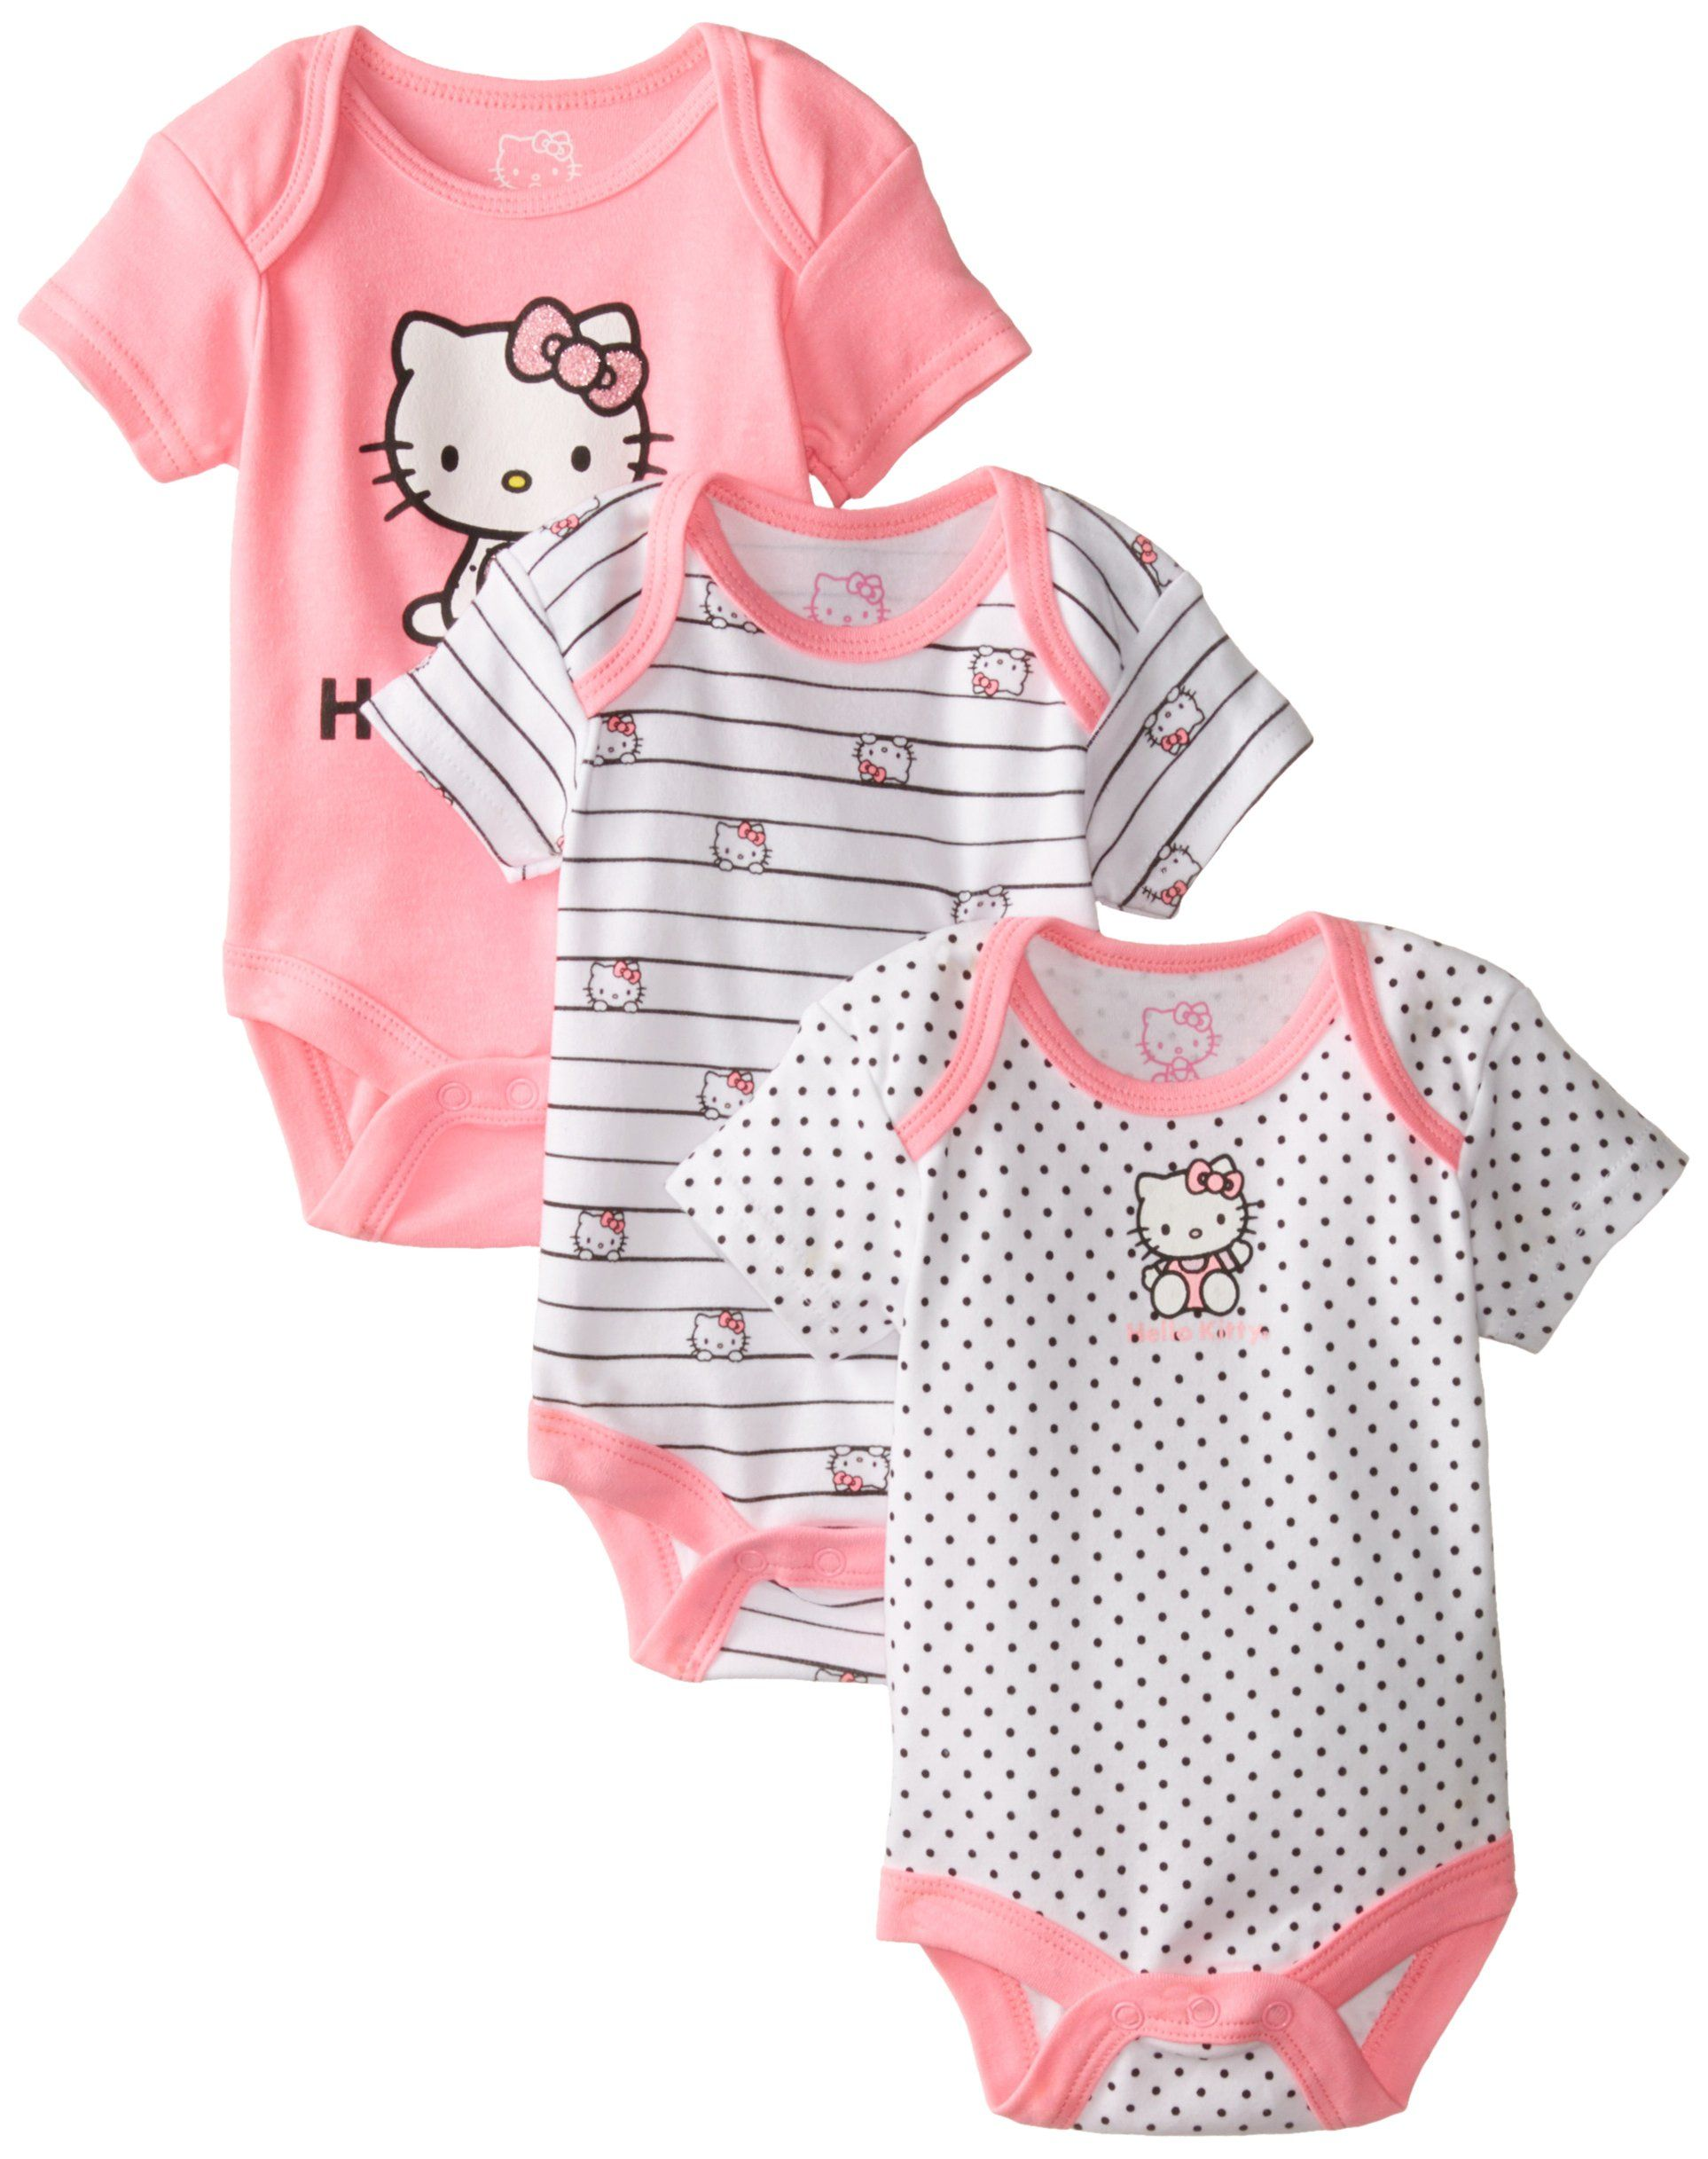 790a7d069 Hello Kitty Baby Baby-Girls Newborn 3 Pack Bodysuits, Multi, 6 Months